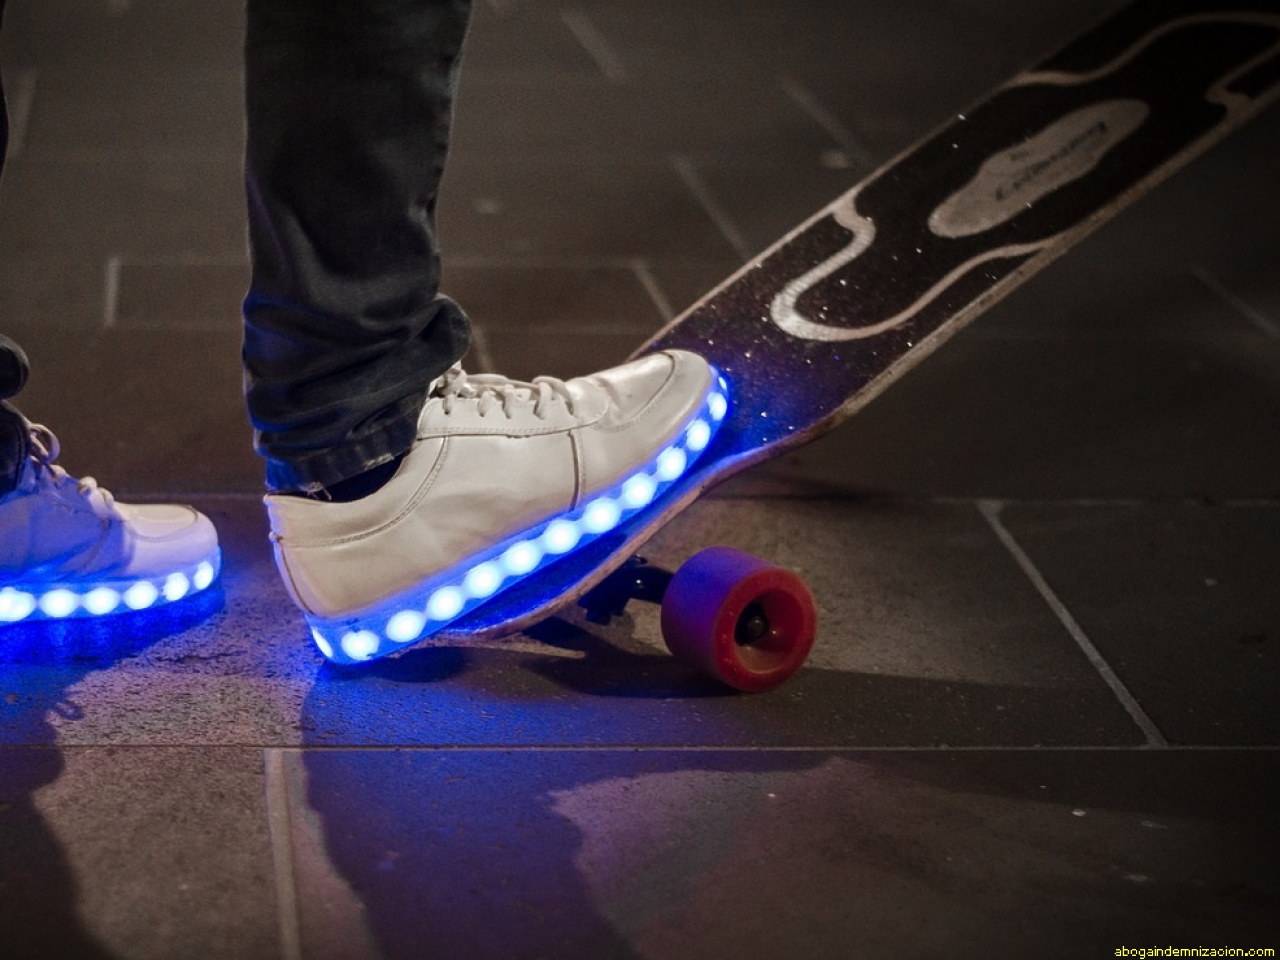 Accidentes causados por patinetes electricos